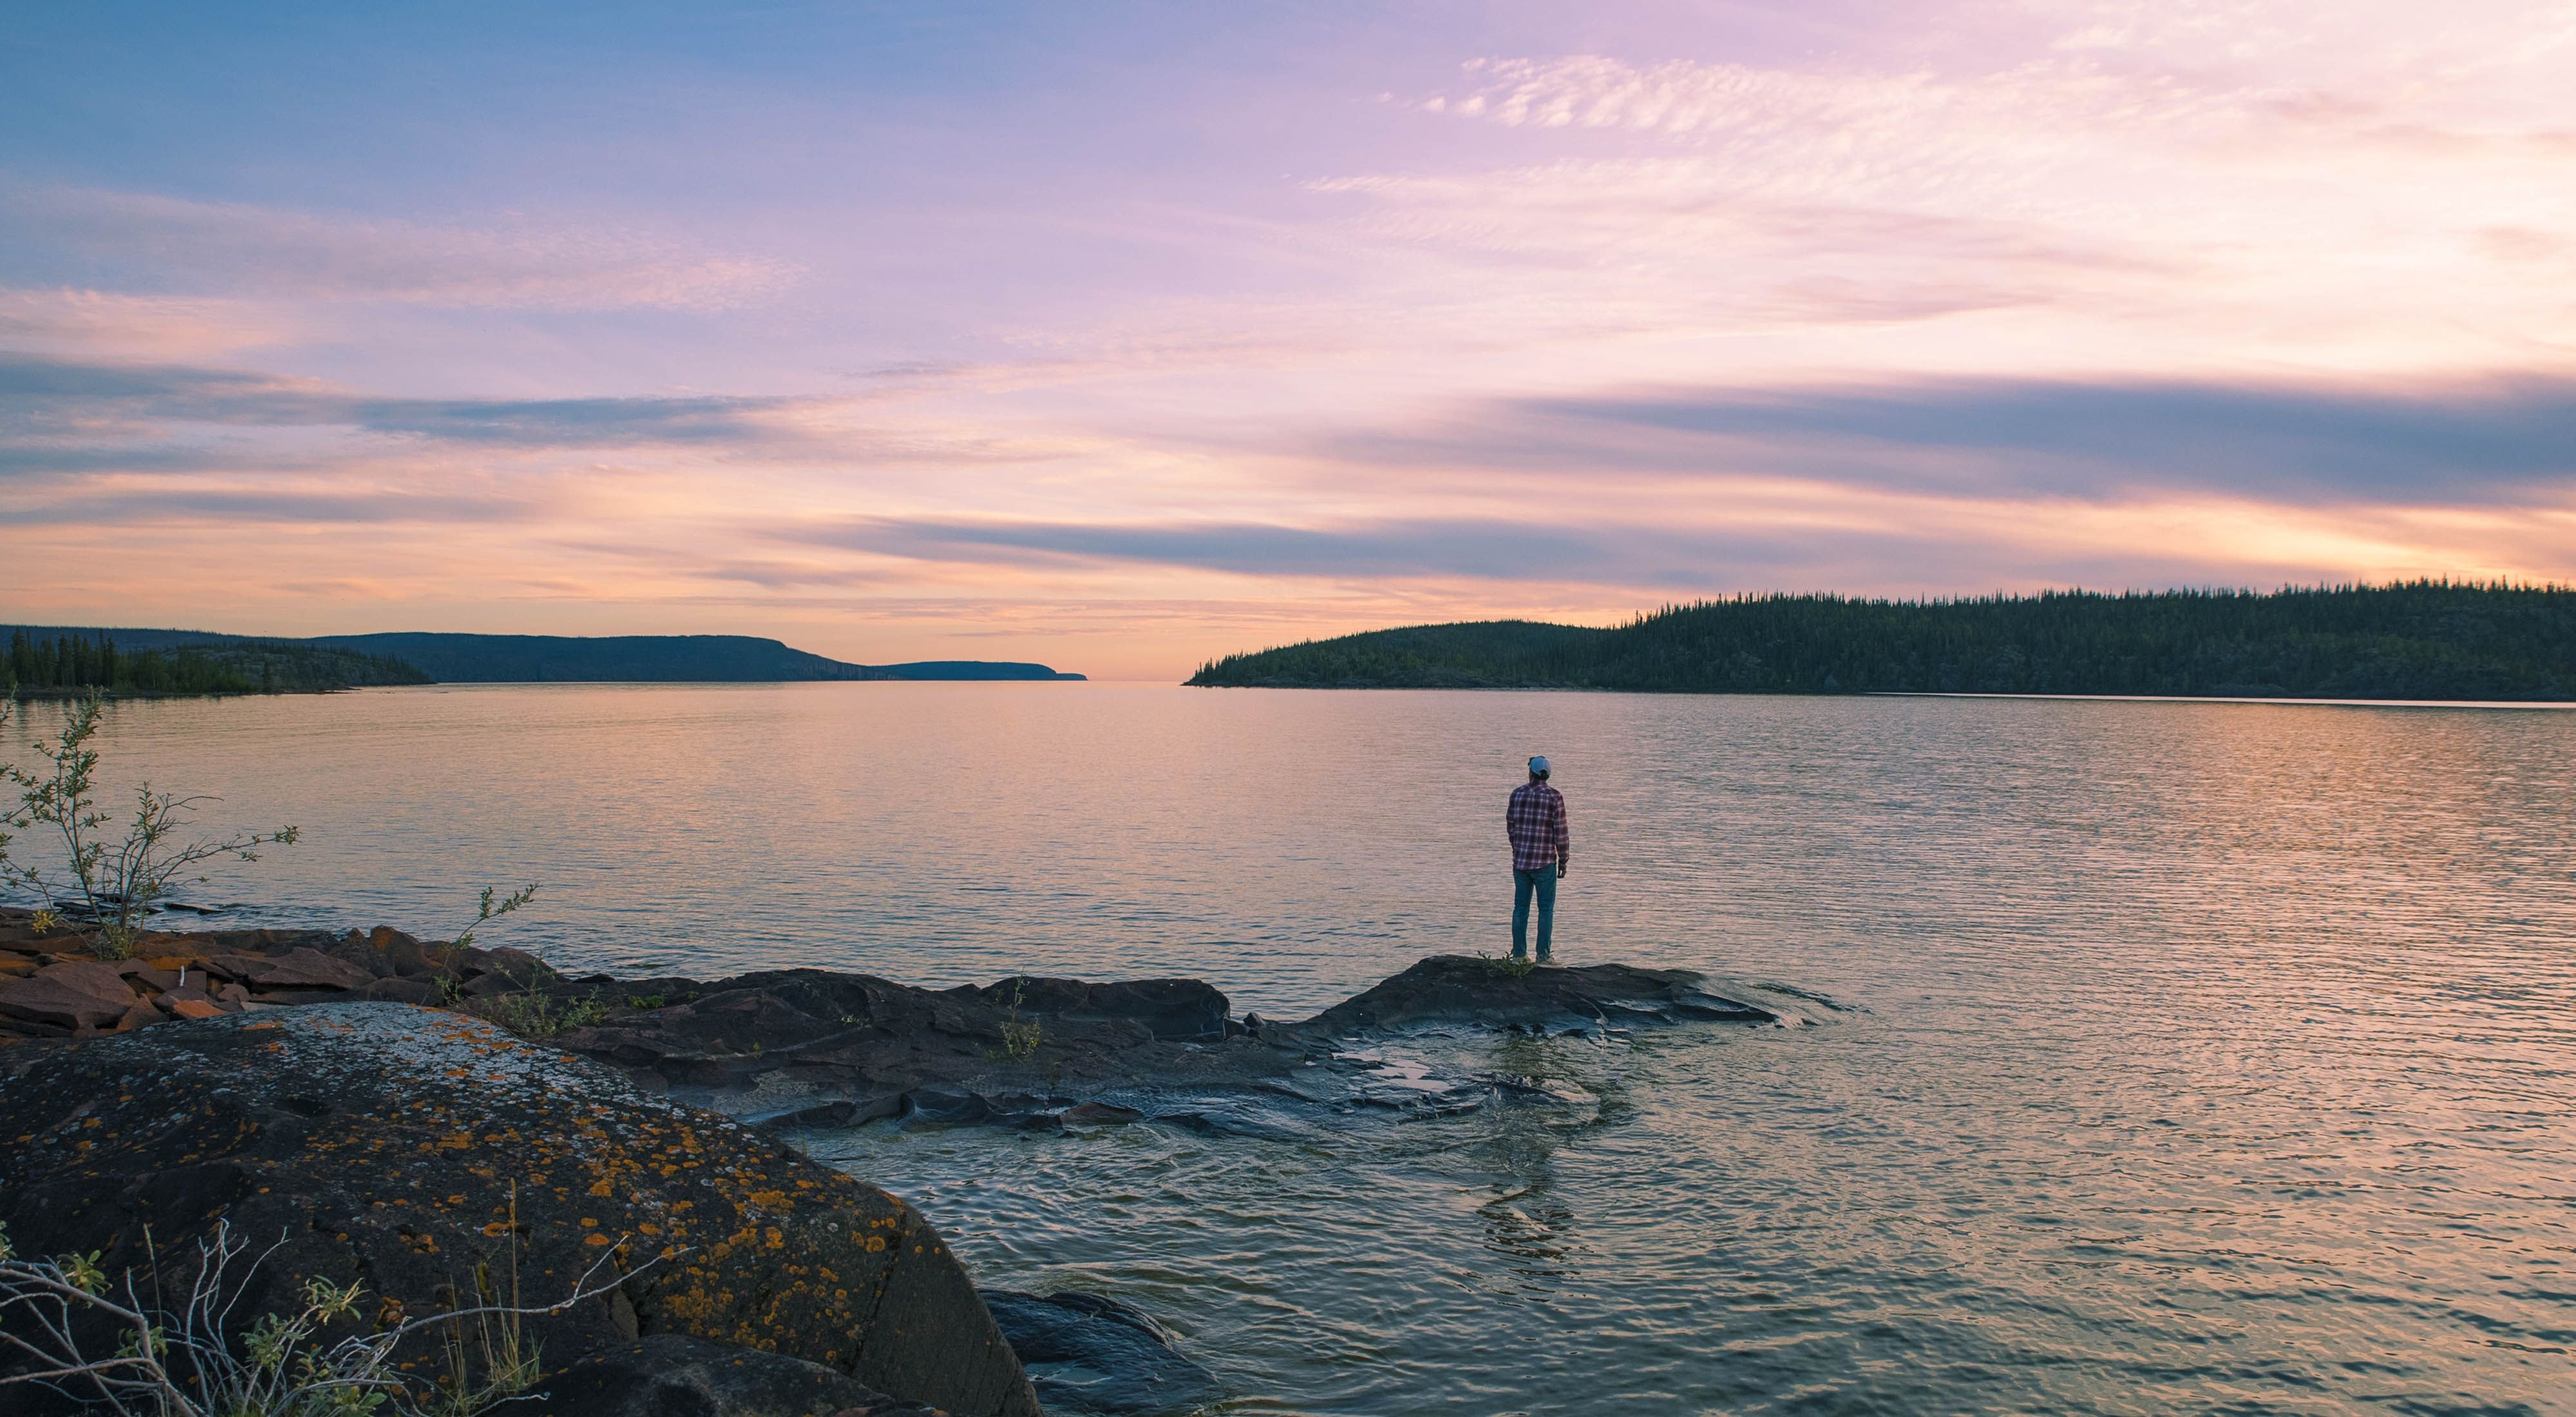 A man stands on a small island overlooking Christie Bay at sunset.